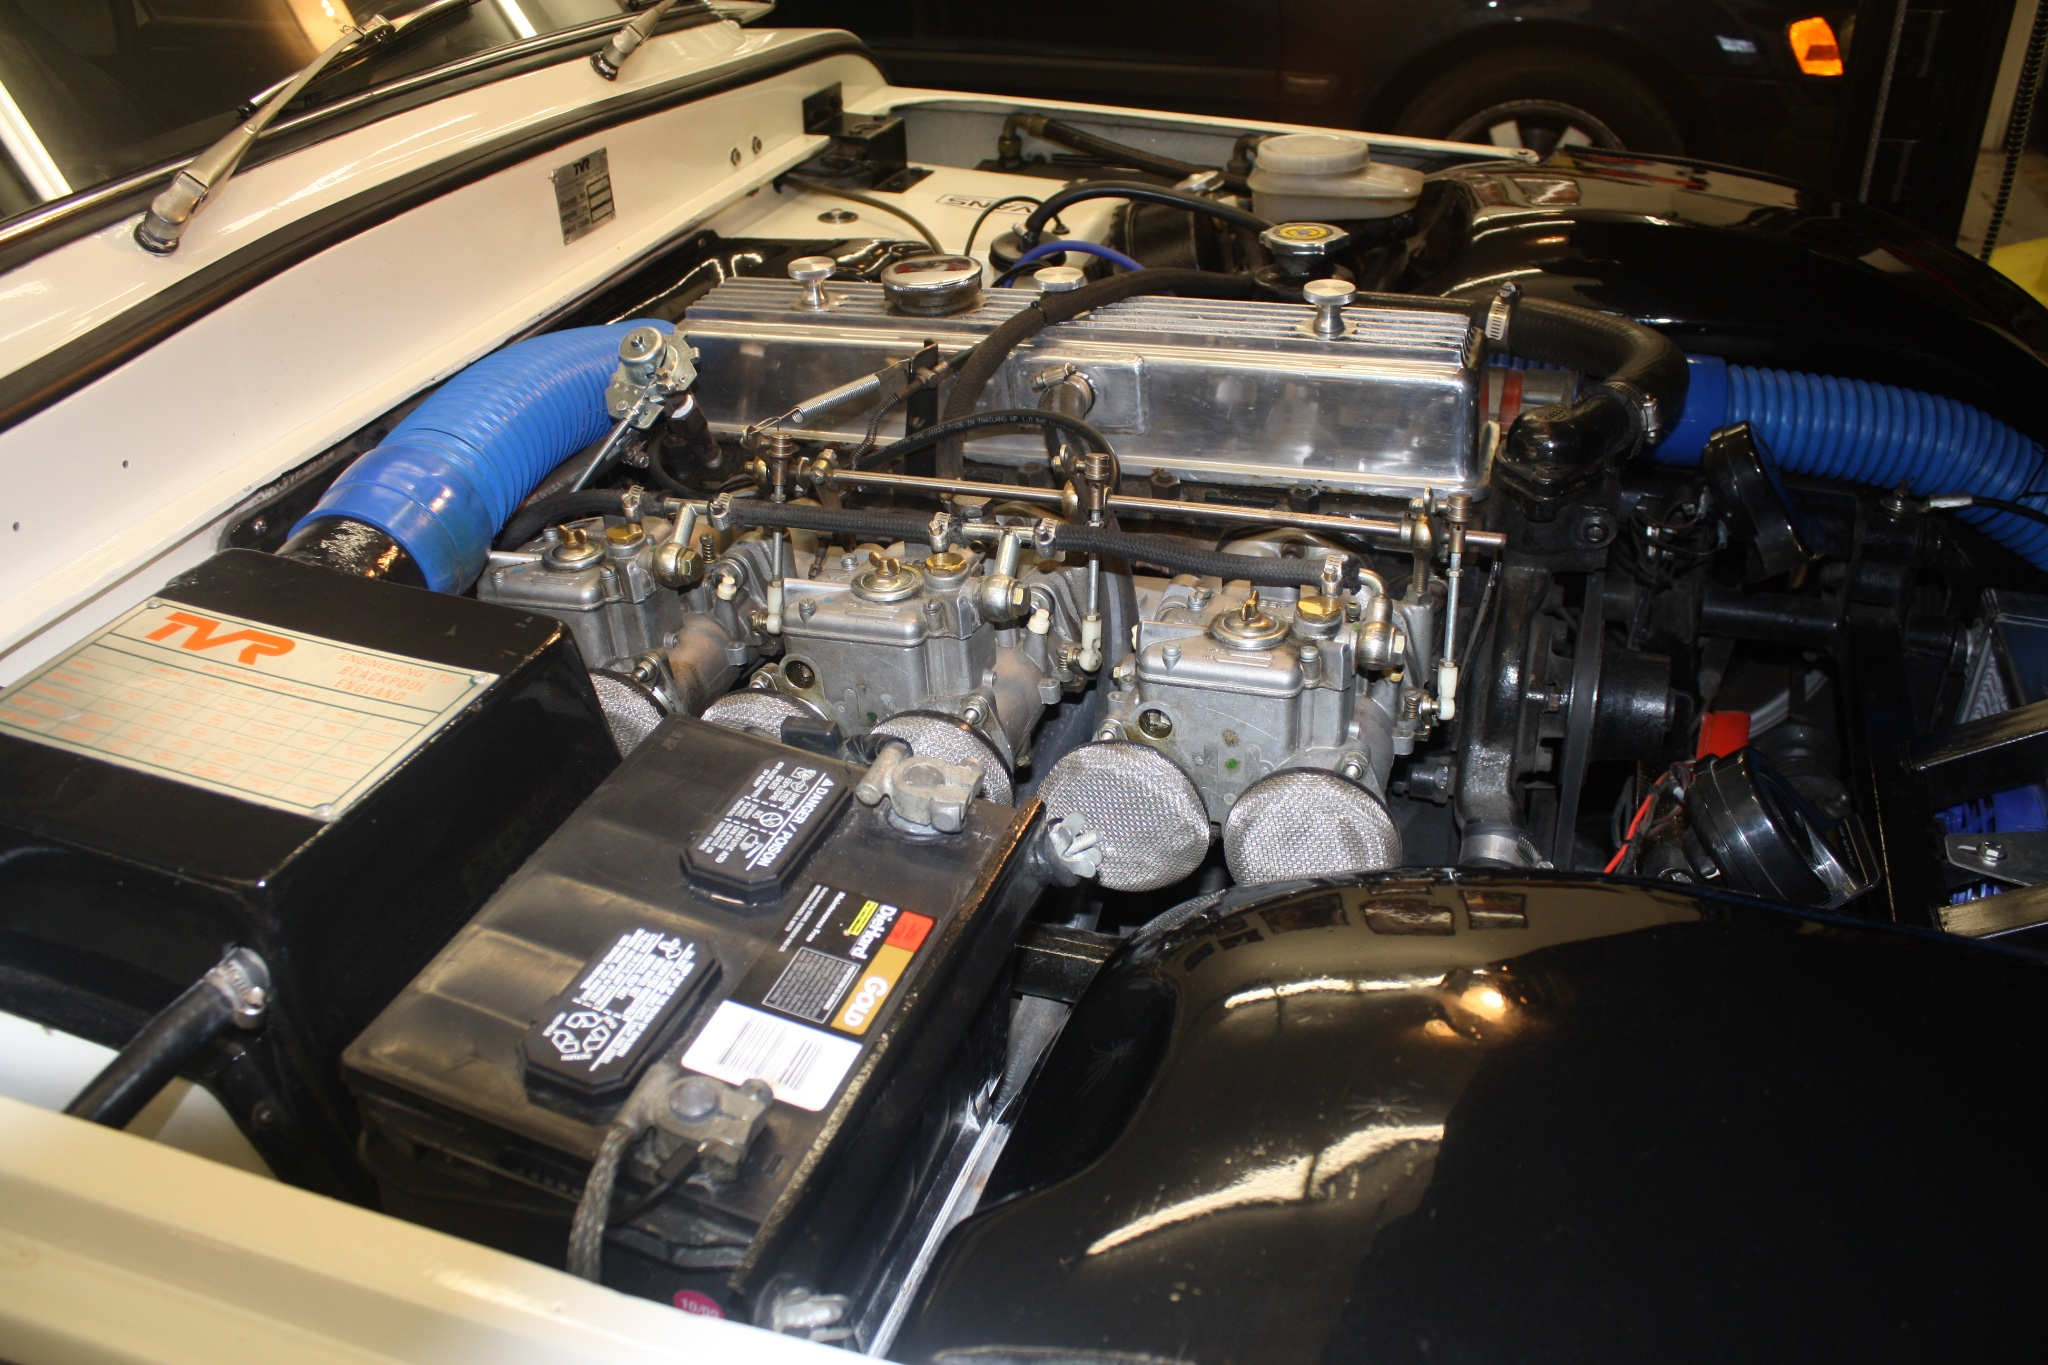 Under the hood of this 1974 TVR 2500M sits a Triumph TR6 2.5 liter six cylinder engine breathing through triple side-draft Webber carburettors. This is a nice amount of power for this lightweight sports car.